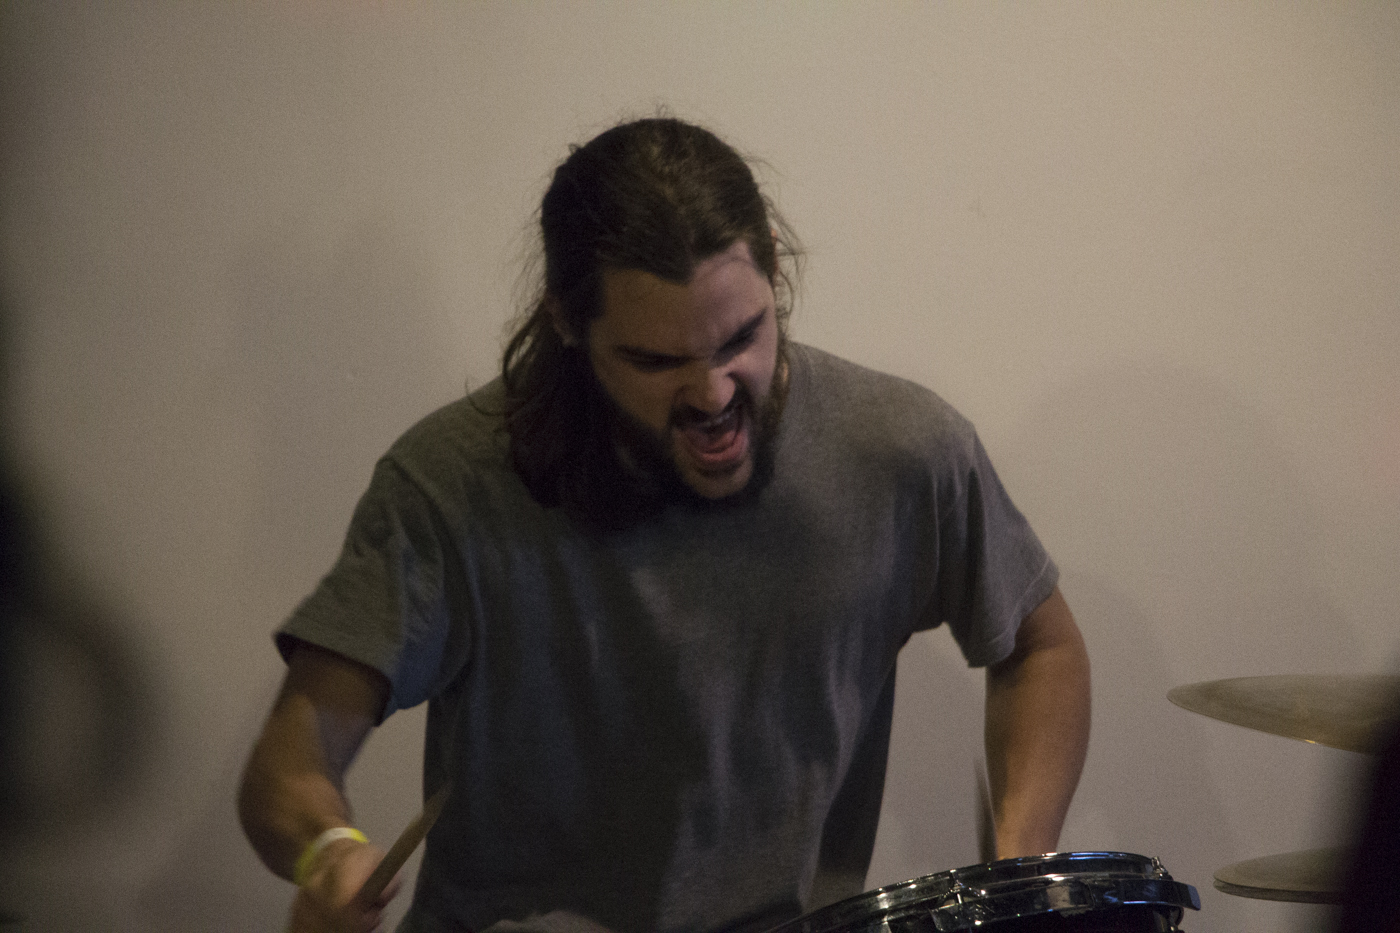 Death-metal duo The Central performed Friday night at Harvester Arts for ICT Fest.